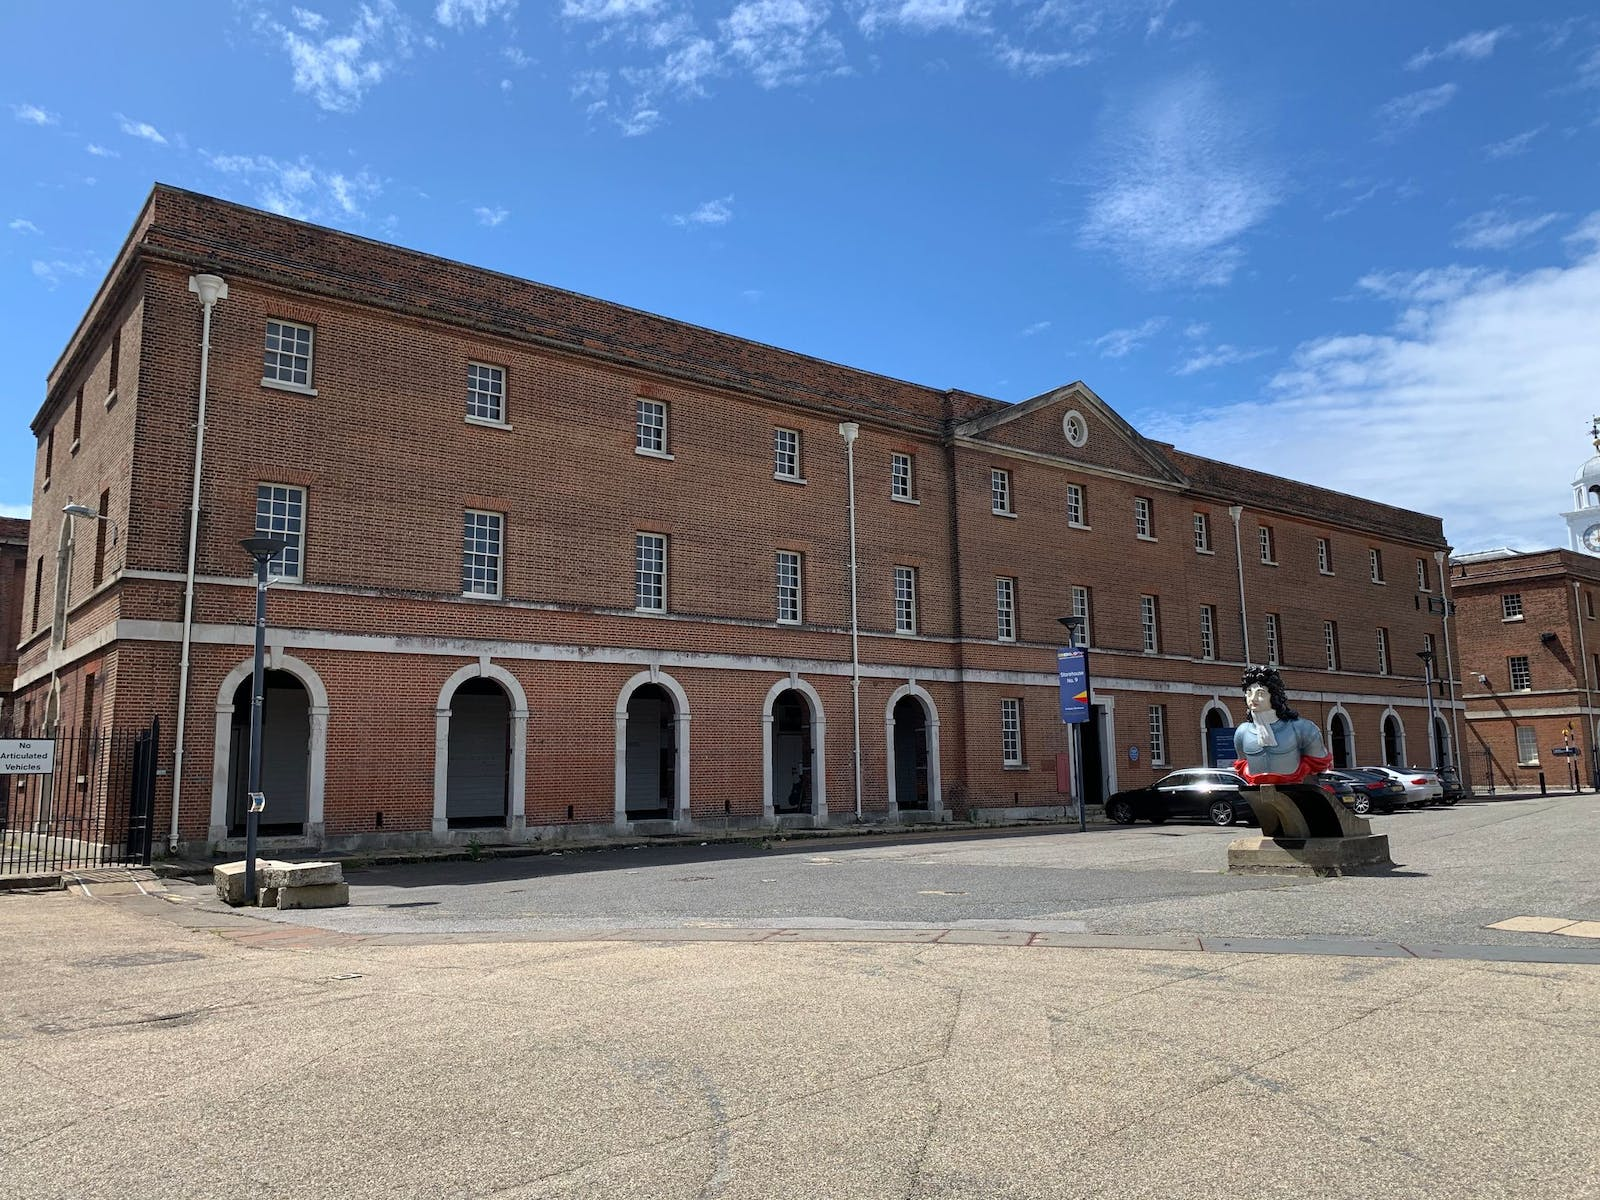 Storehouse 9, Main Road, Portsmouth, Office / Retail / Leisure / Industrial / Warehouse / Other / D2 (Assembly and Leisure) To Let - MuybFh5g.jpeg